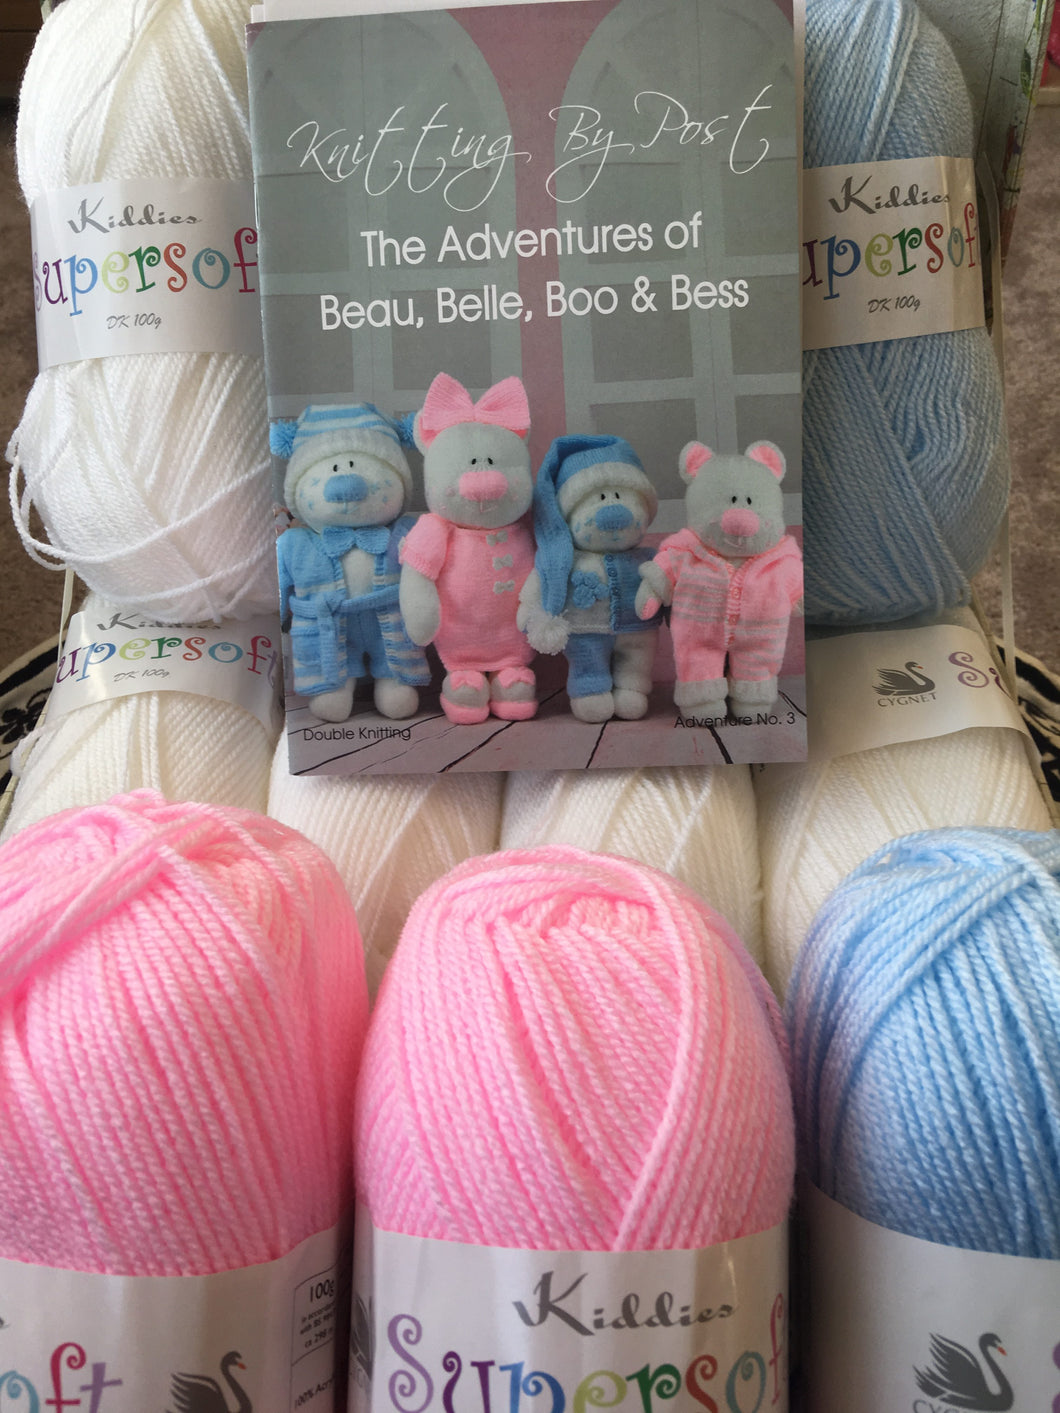 Knitting Pattern plus wool, The Adventures of Beau, Belle, Boo and Bess